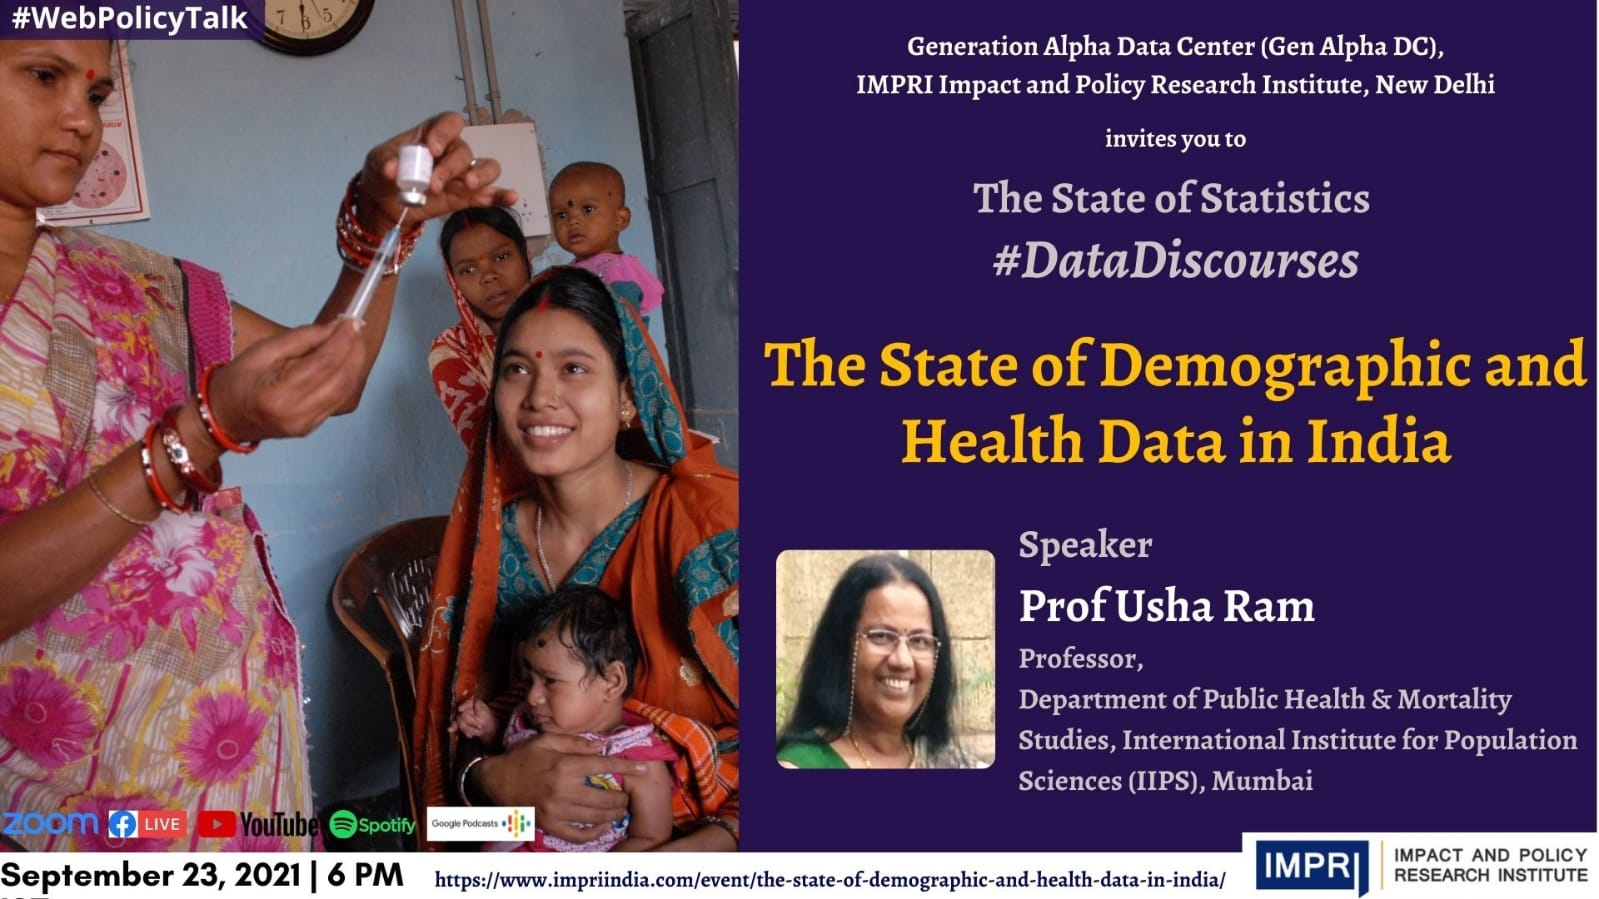 The State of Demographic and Health Data in India